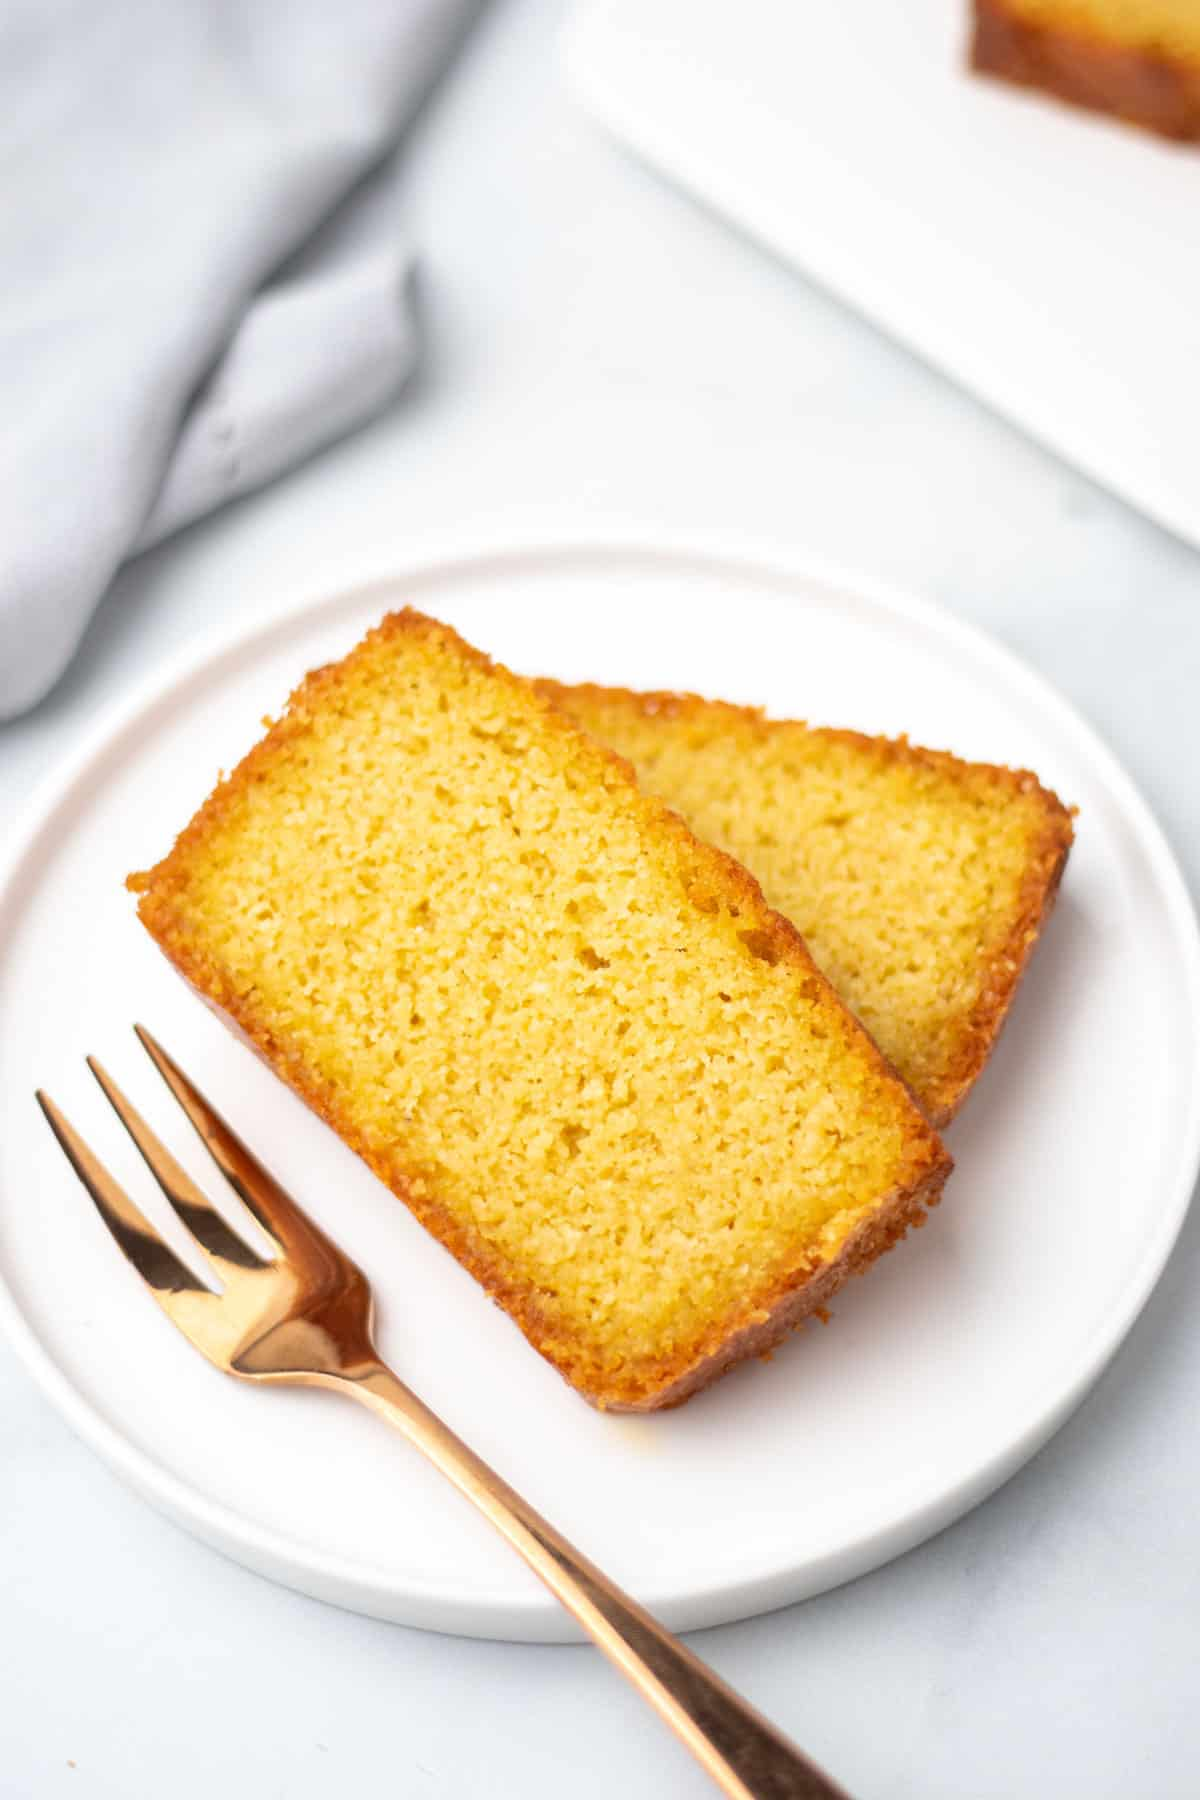 Two slices of pound cake on a white plate next to a fork